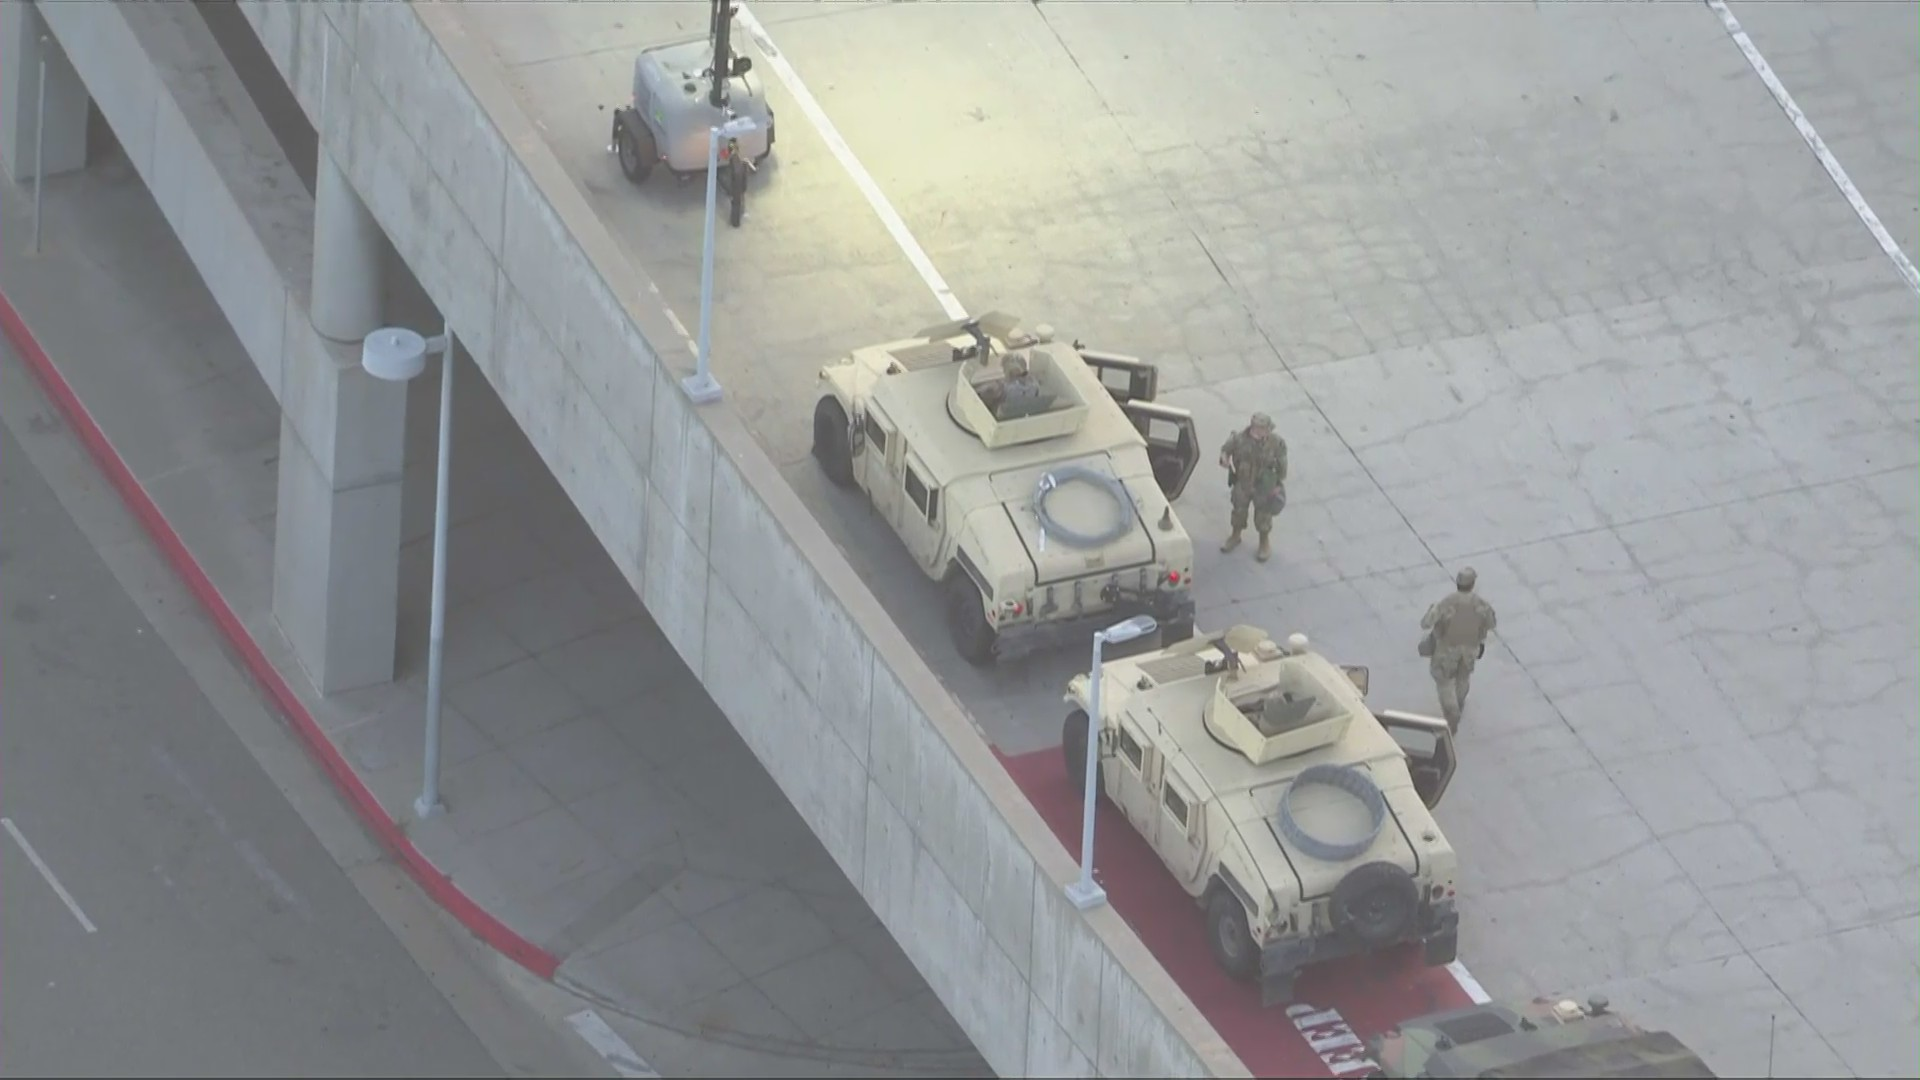 National Guard troops are seen at the Los Angeles Convention Center May 31, 2020, a day after Mayor Eric Garcetti asked them to be sent to the city. (KTLA)